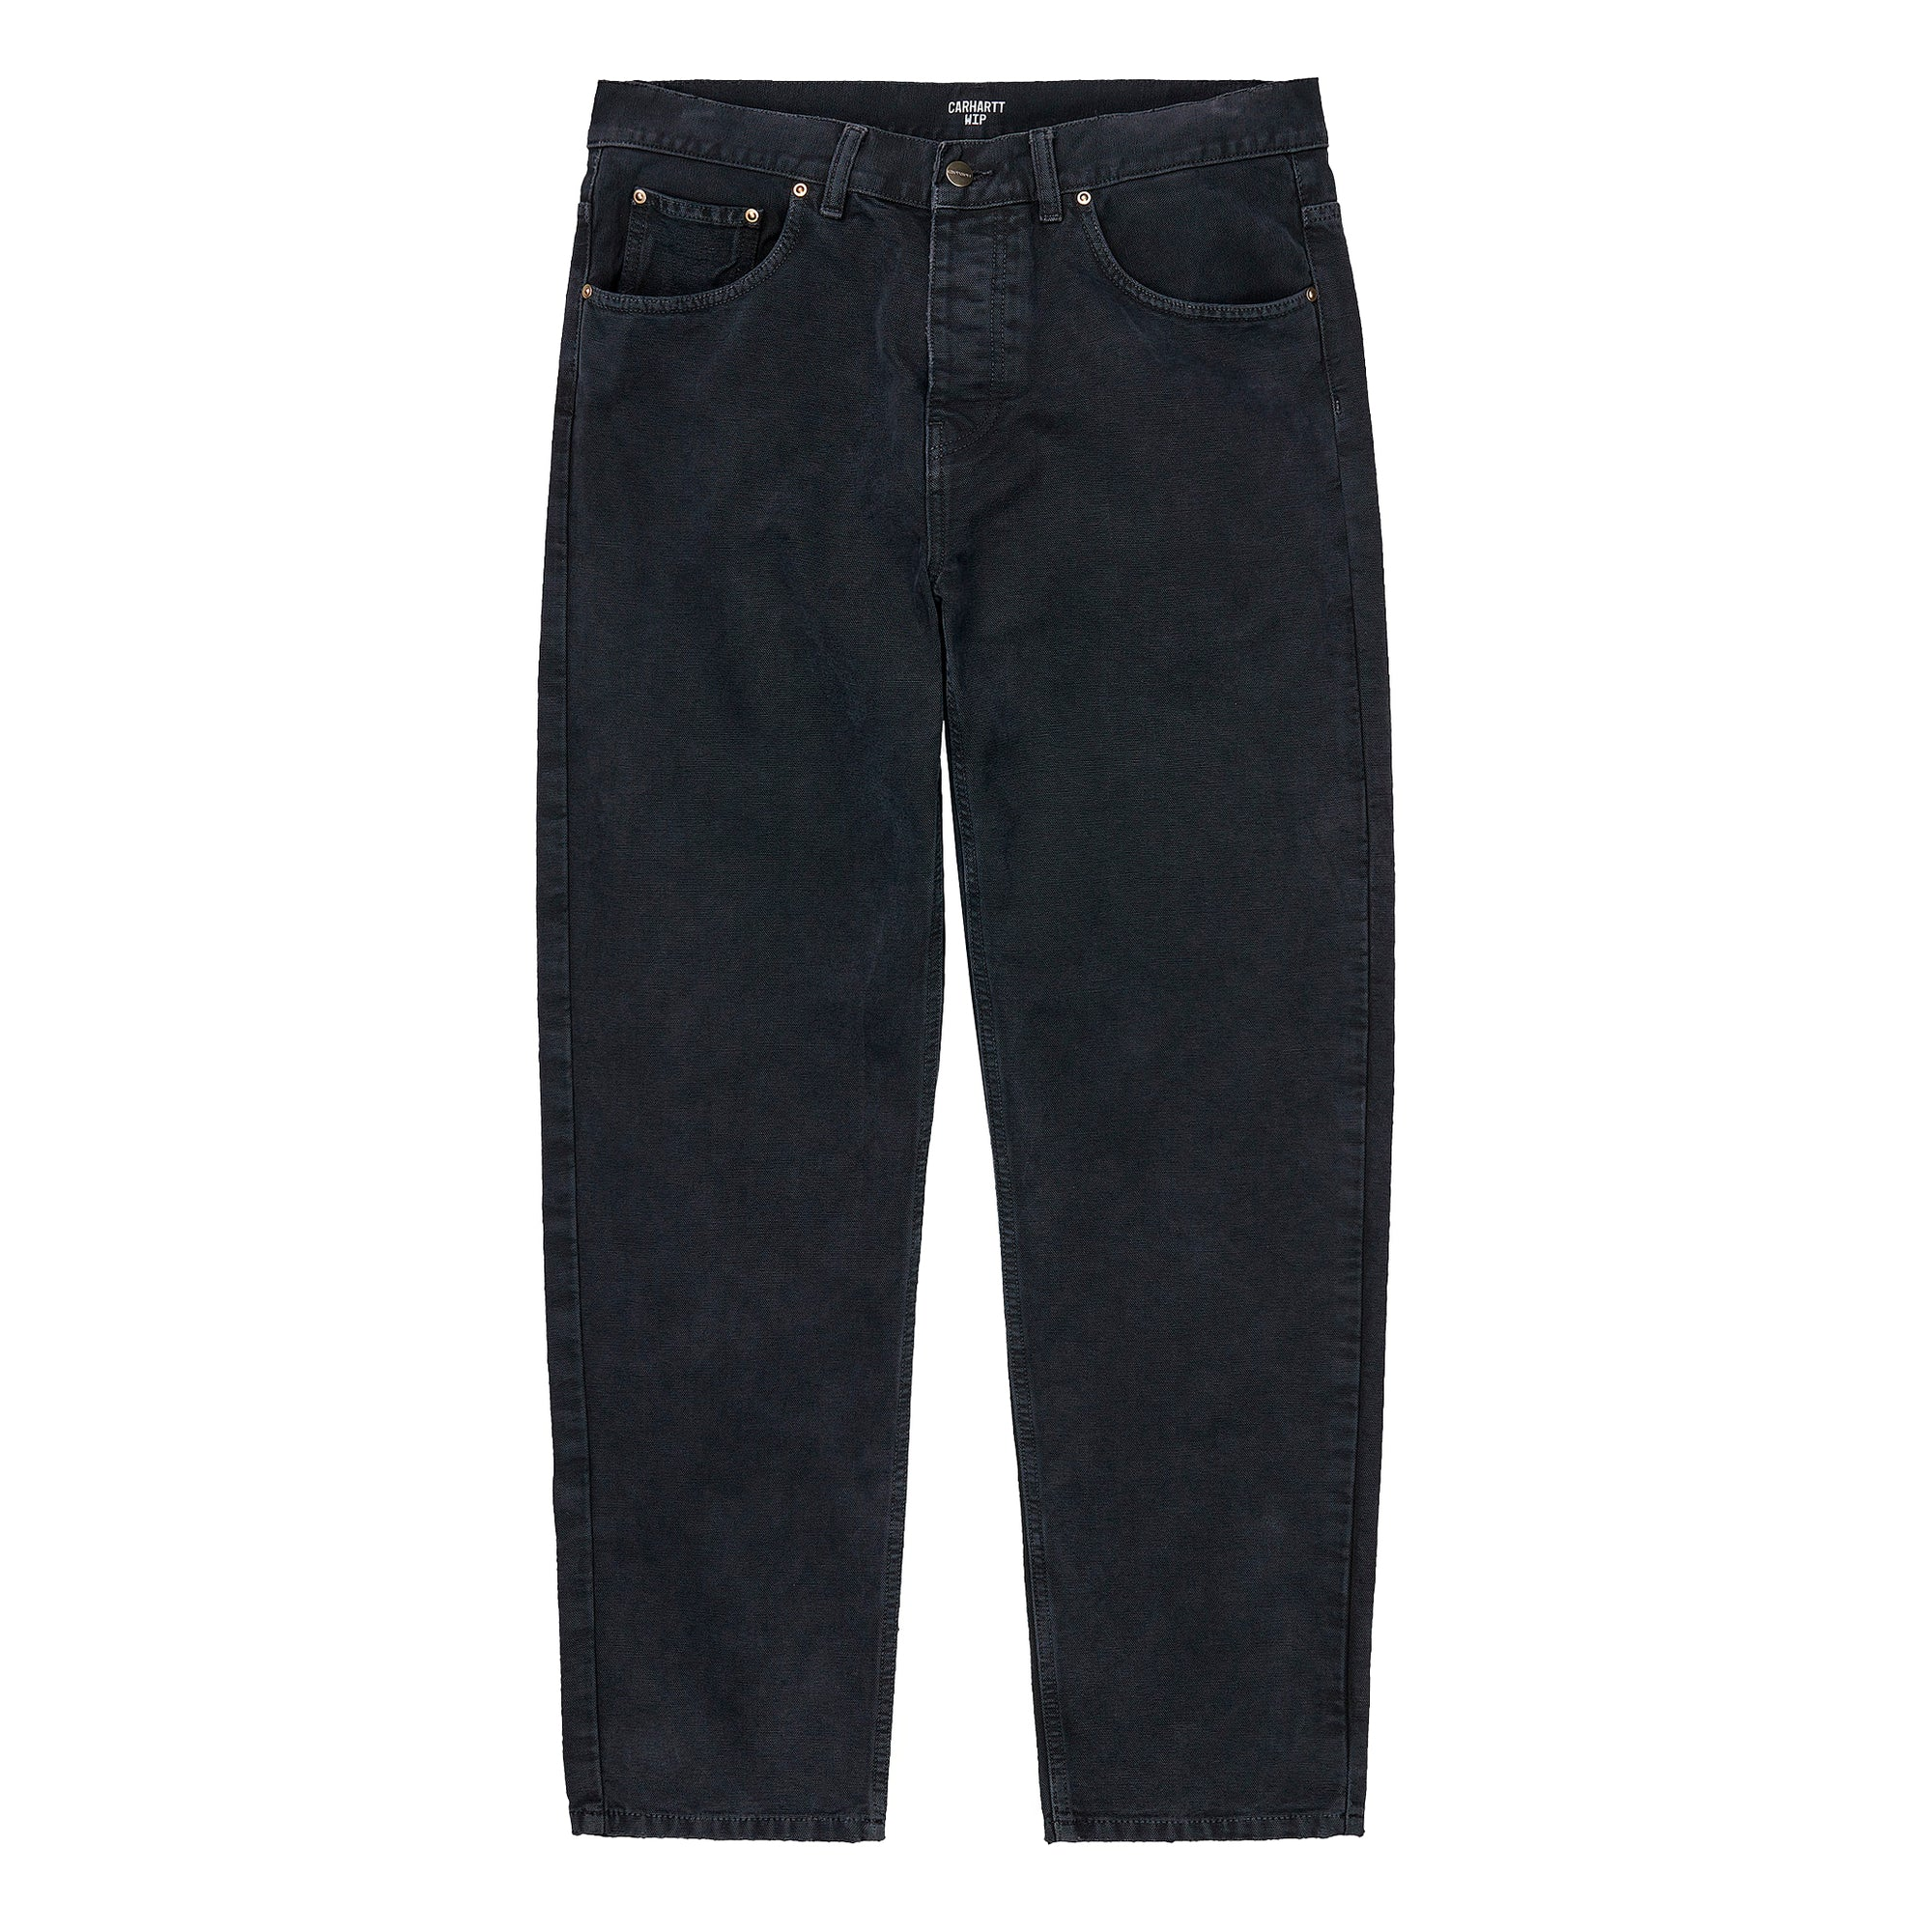 Carhartt WIP Newel Pant: Black Worn Canvas - The Union Project